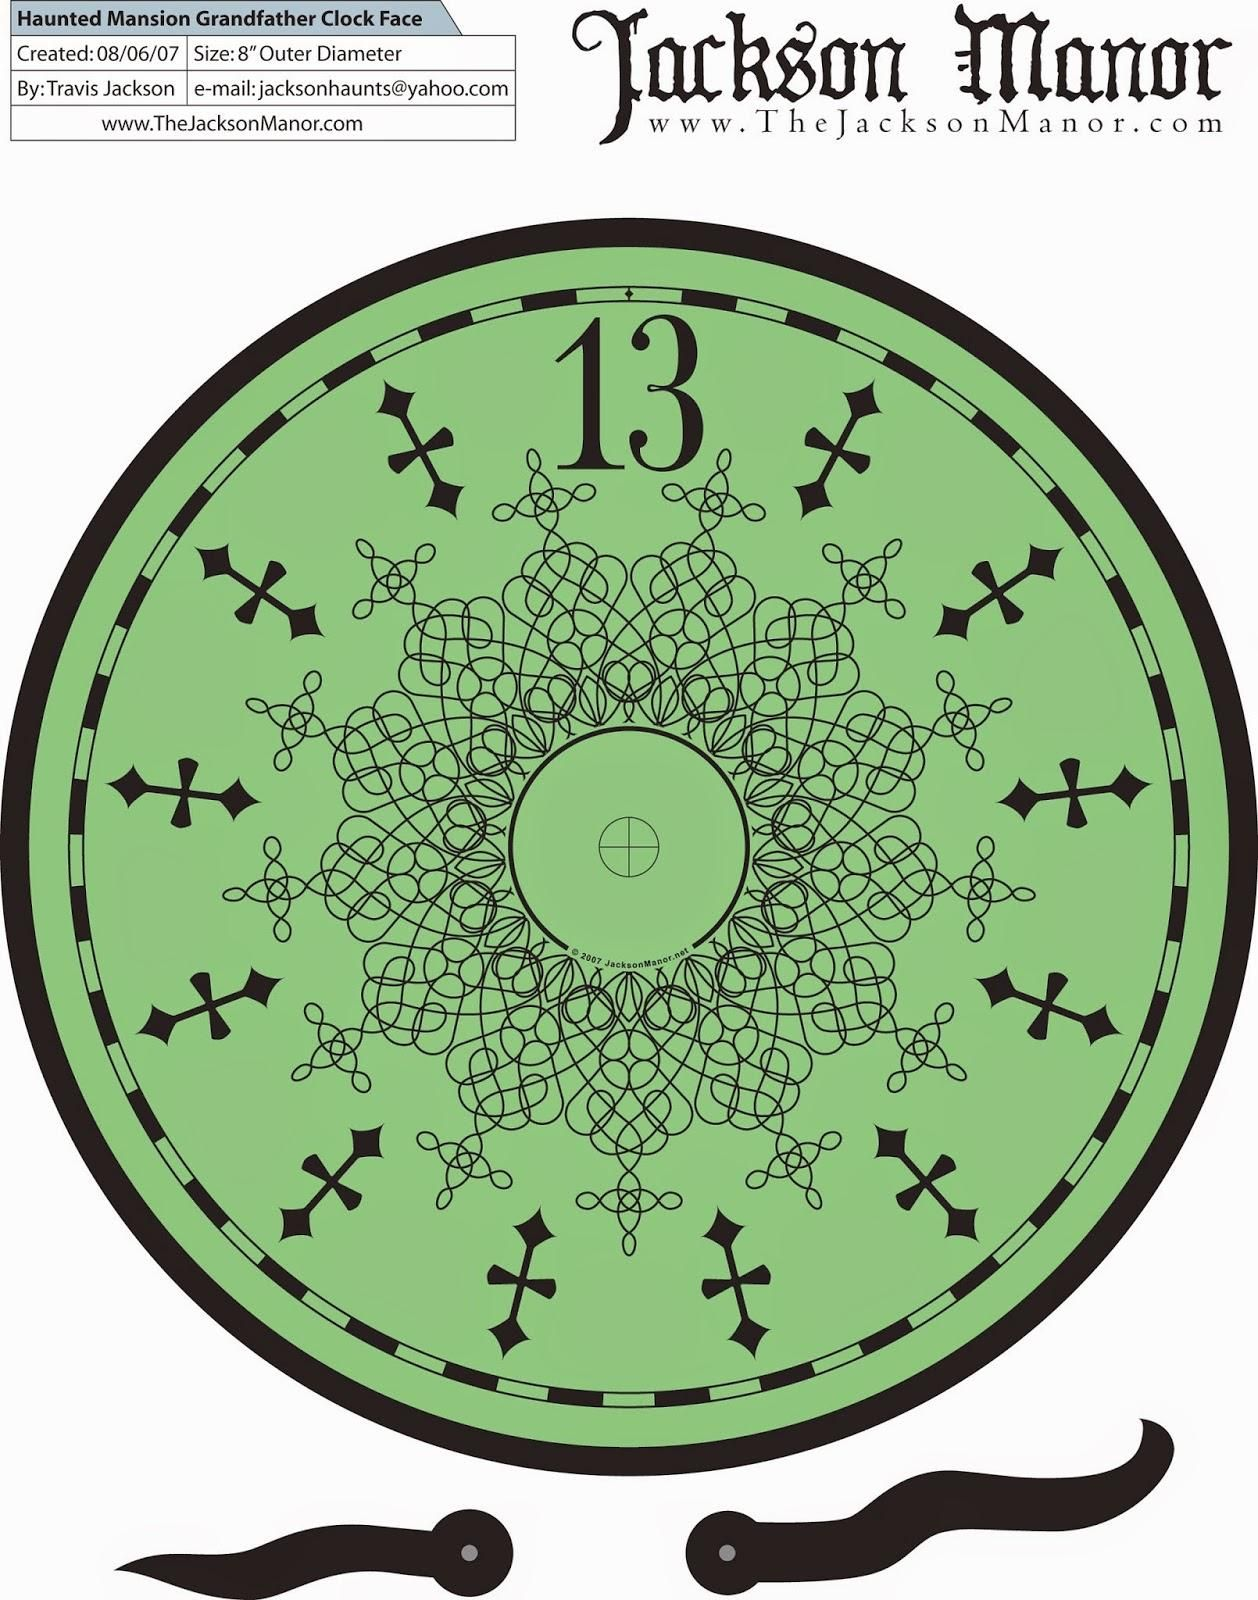 Disney Printable Haunted Mansion Clock Face Double Click Photo Once You Are On The Source Page